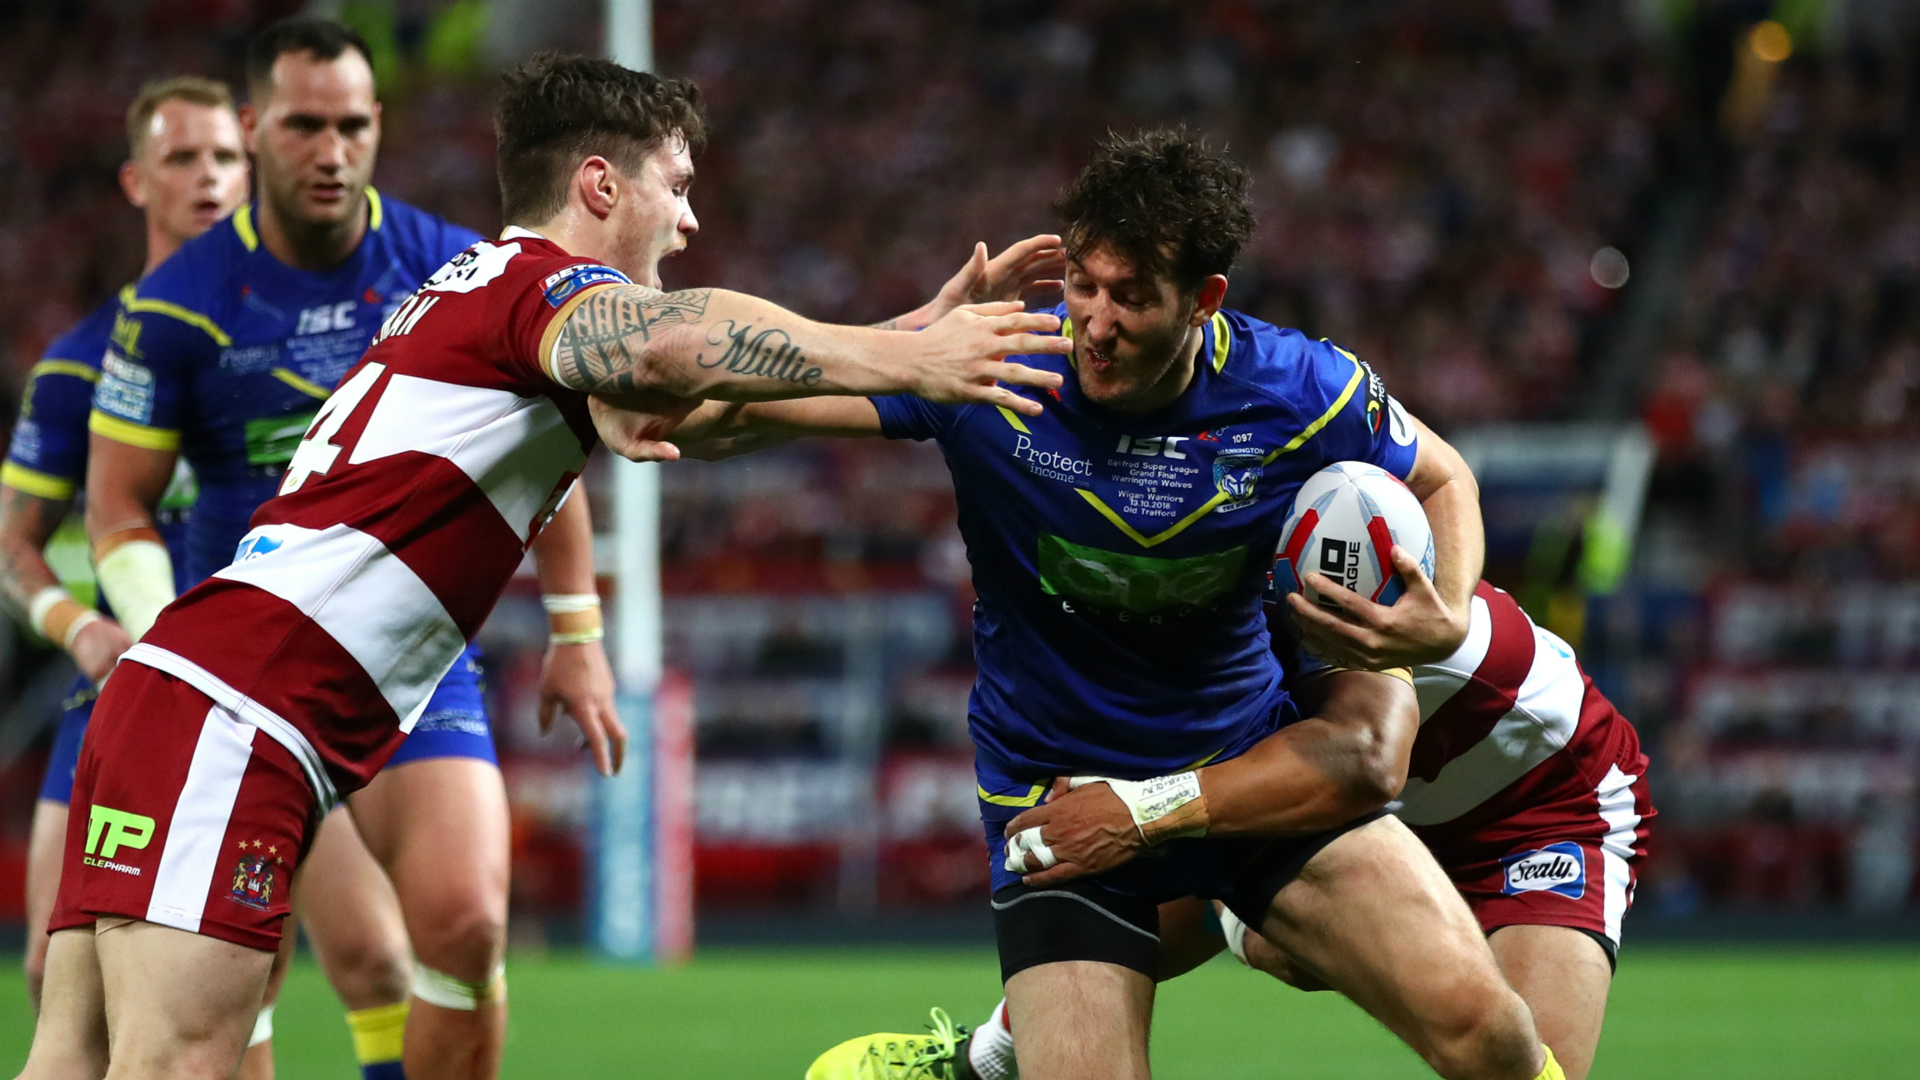 Stefan Ratchford is set to miss a large portion of the Super League season as he prepares to undergo surgery.